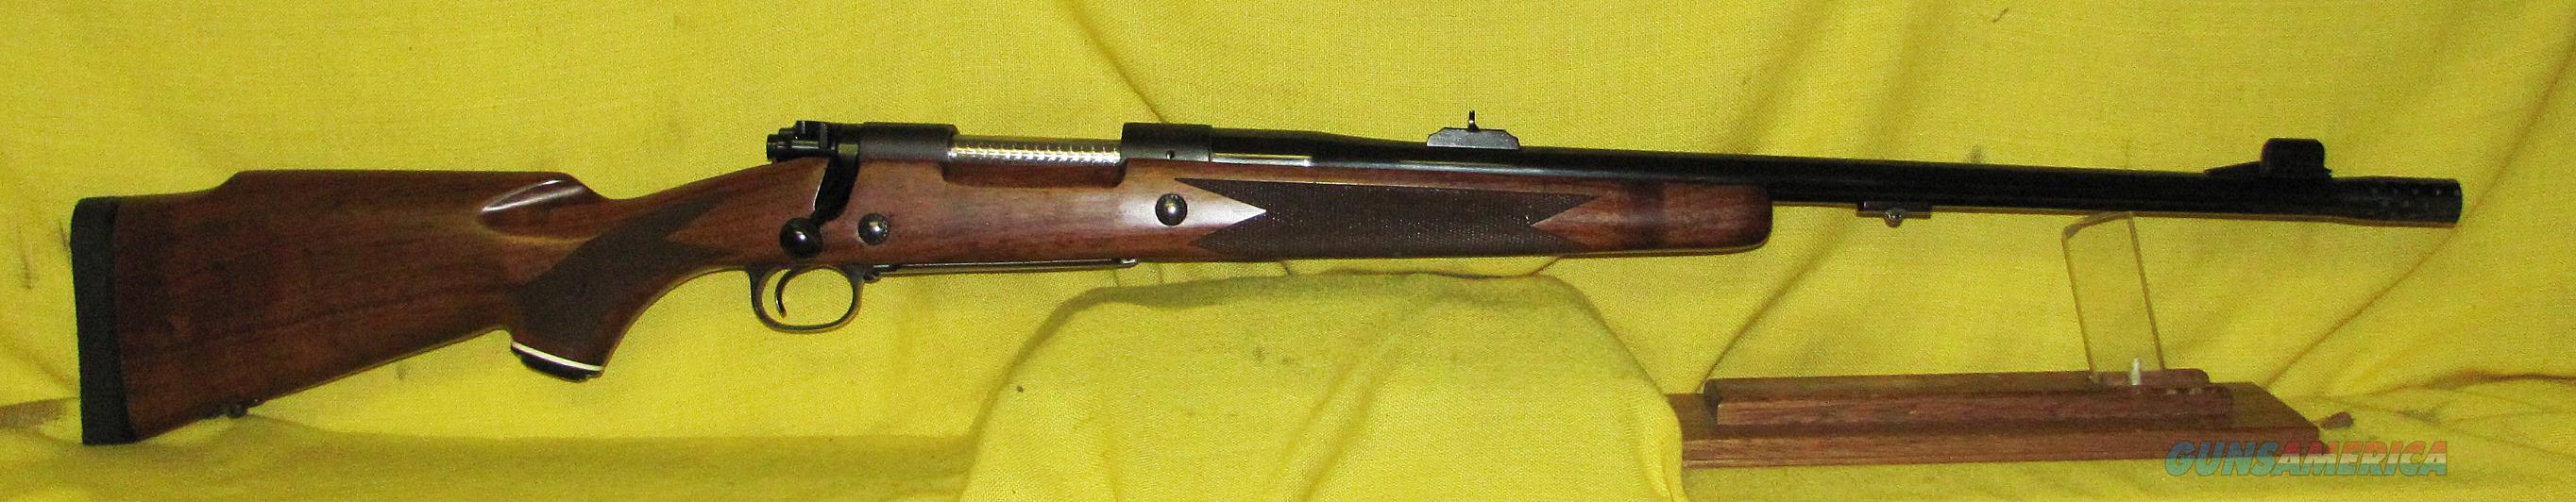 WINCHESTER 70 SUPER EXPRESS  Guns > Rifles > Winchester Rifles - Modern Bolt/Auto/Single > Model 70 > Post-64